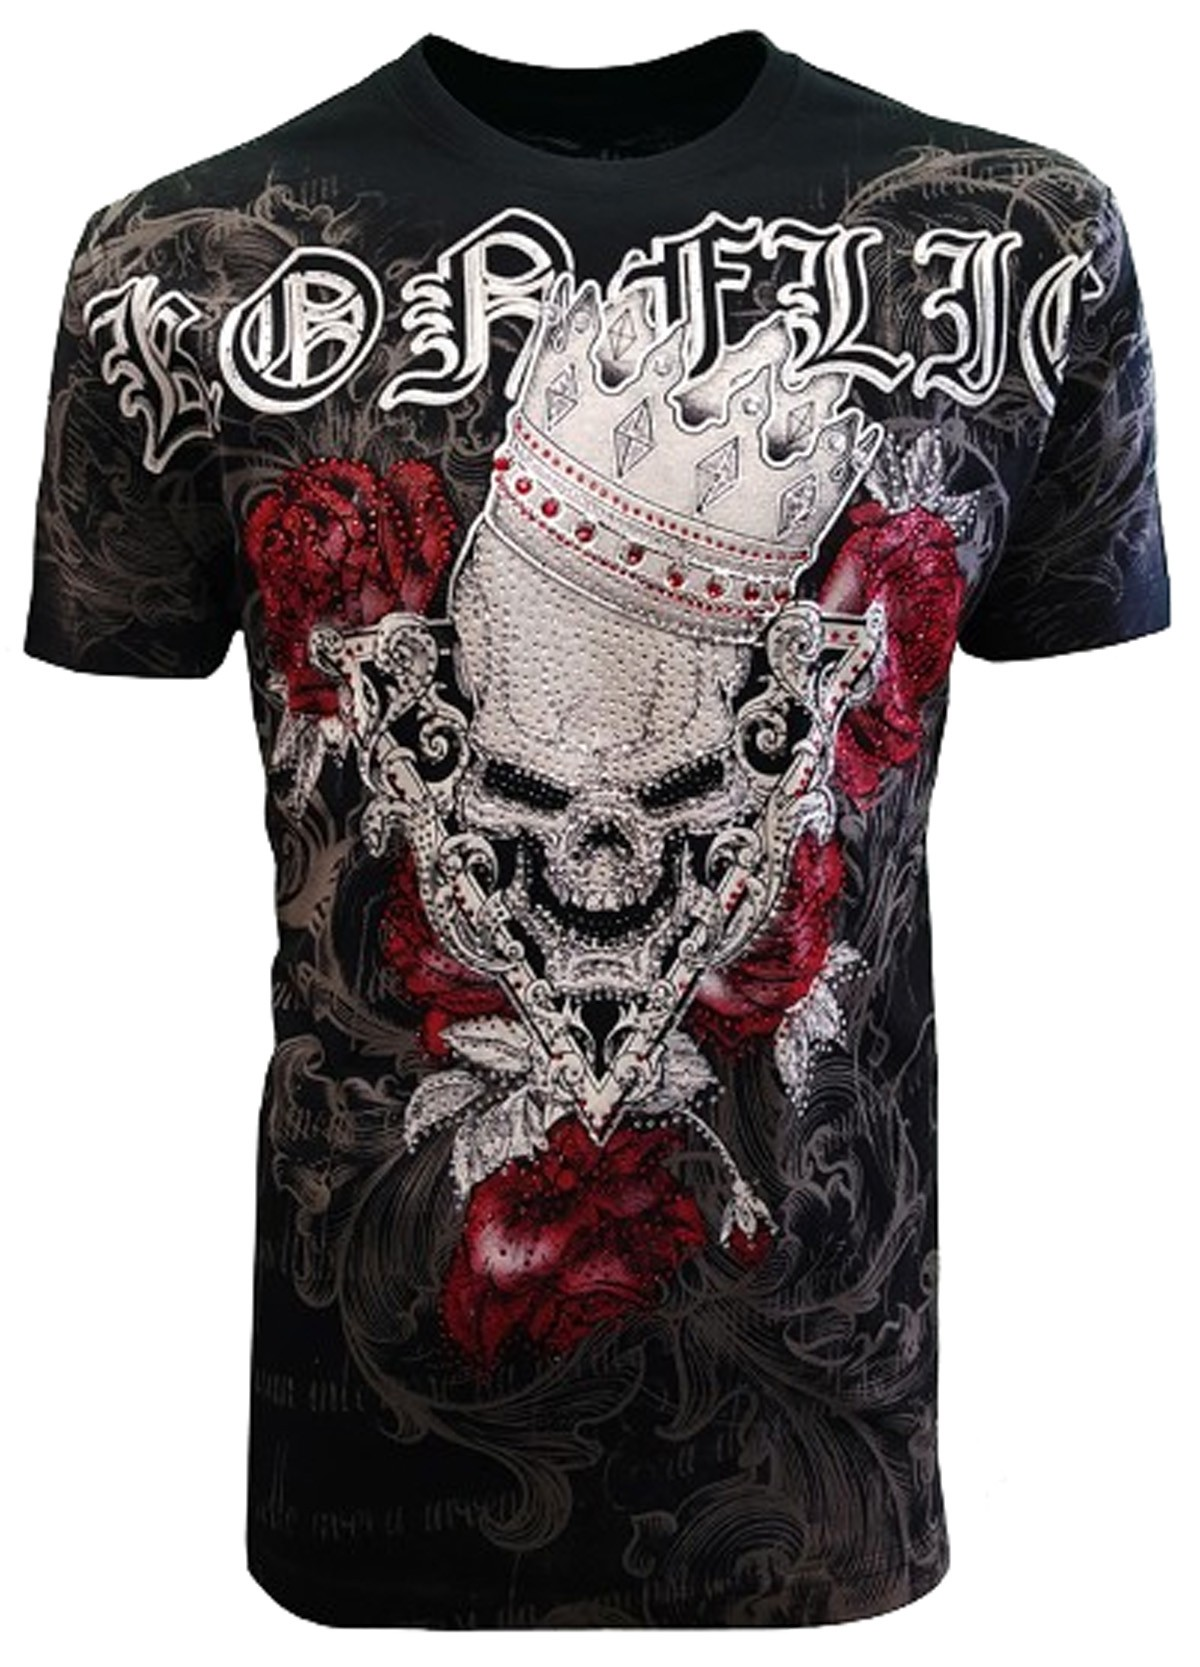 Konflic Clothing - Evil Skull Strass T-Shirt